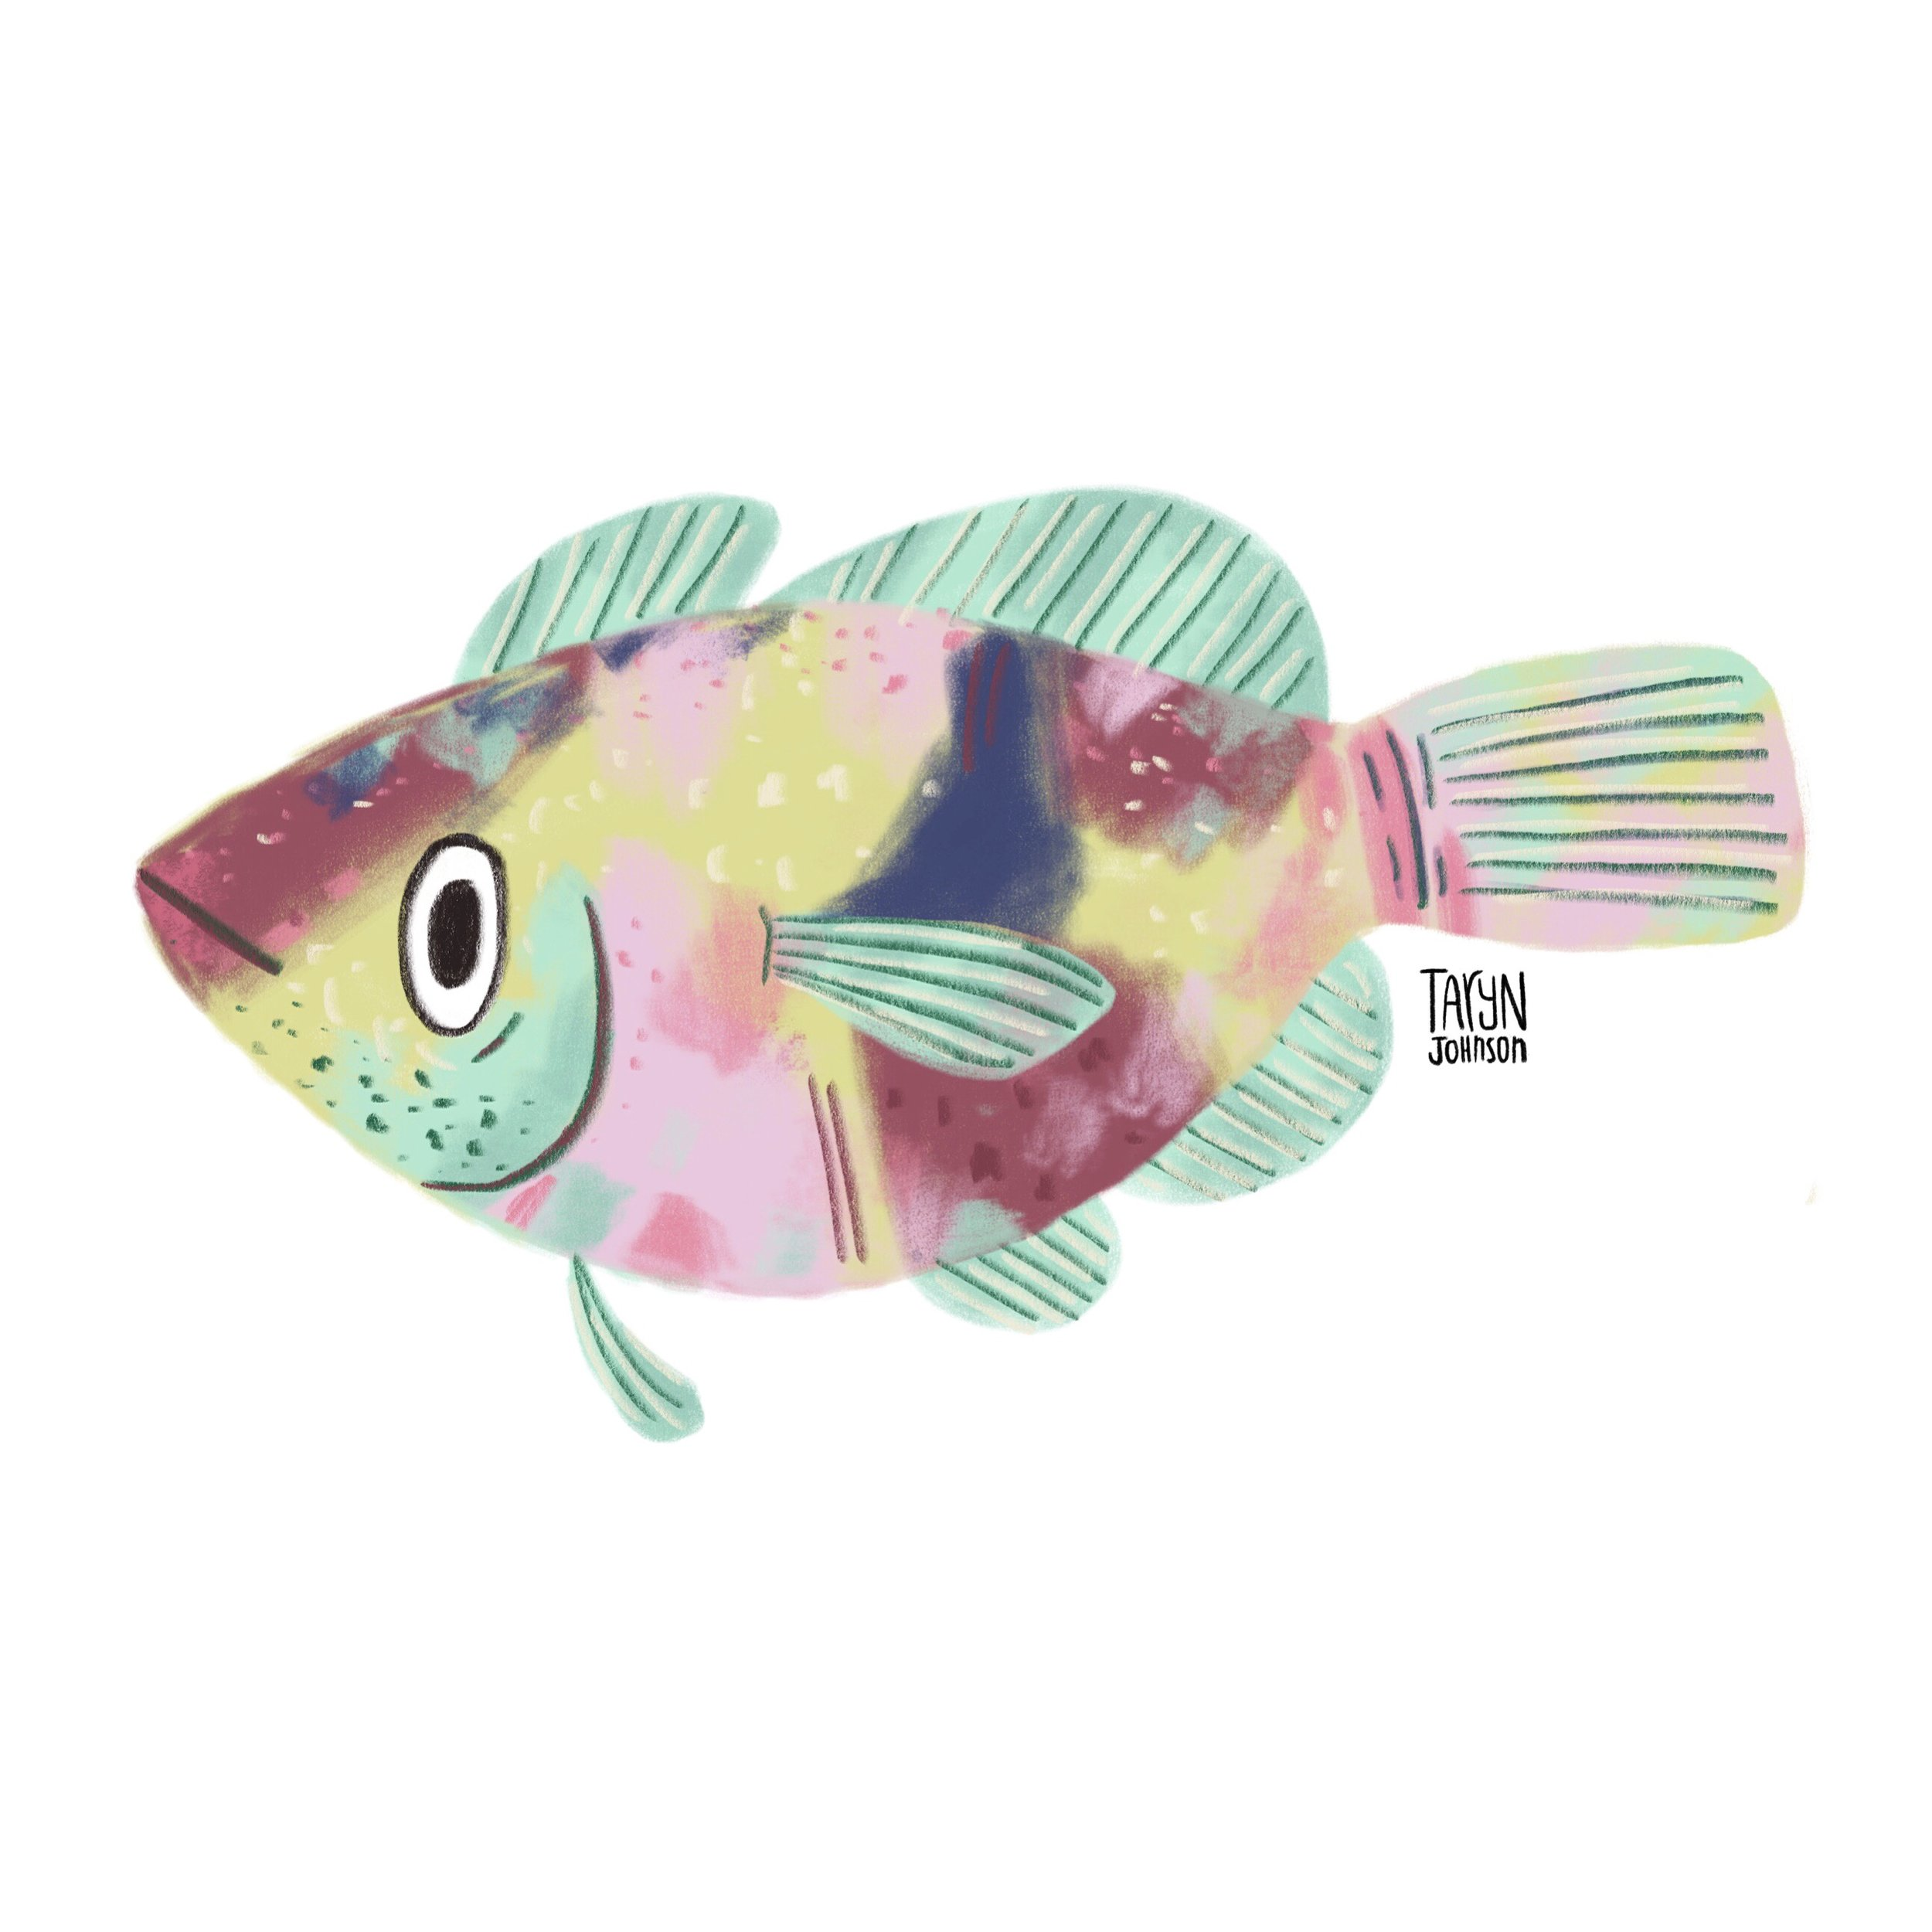 7/100 a funky fish